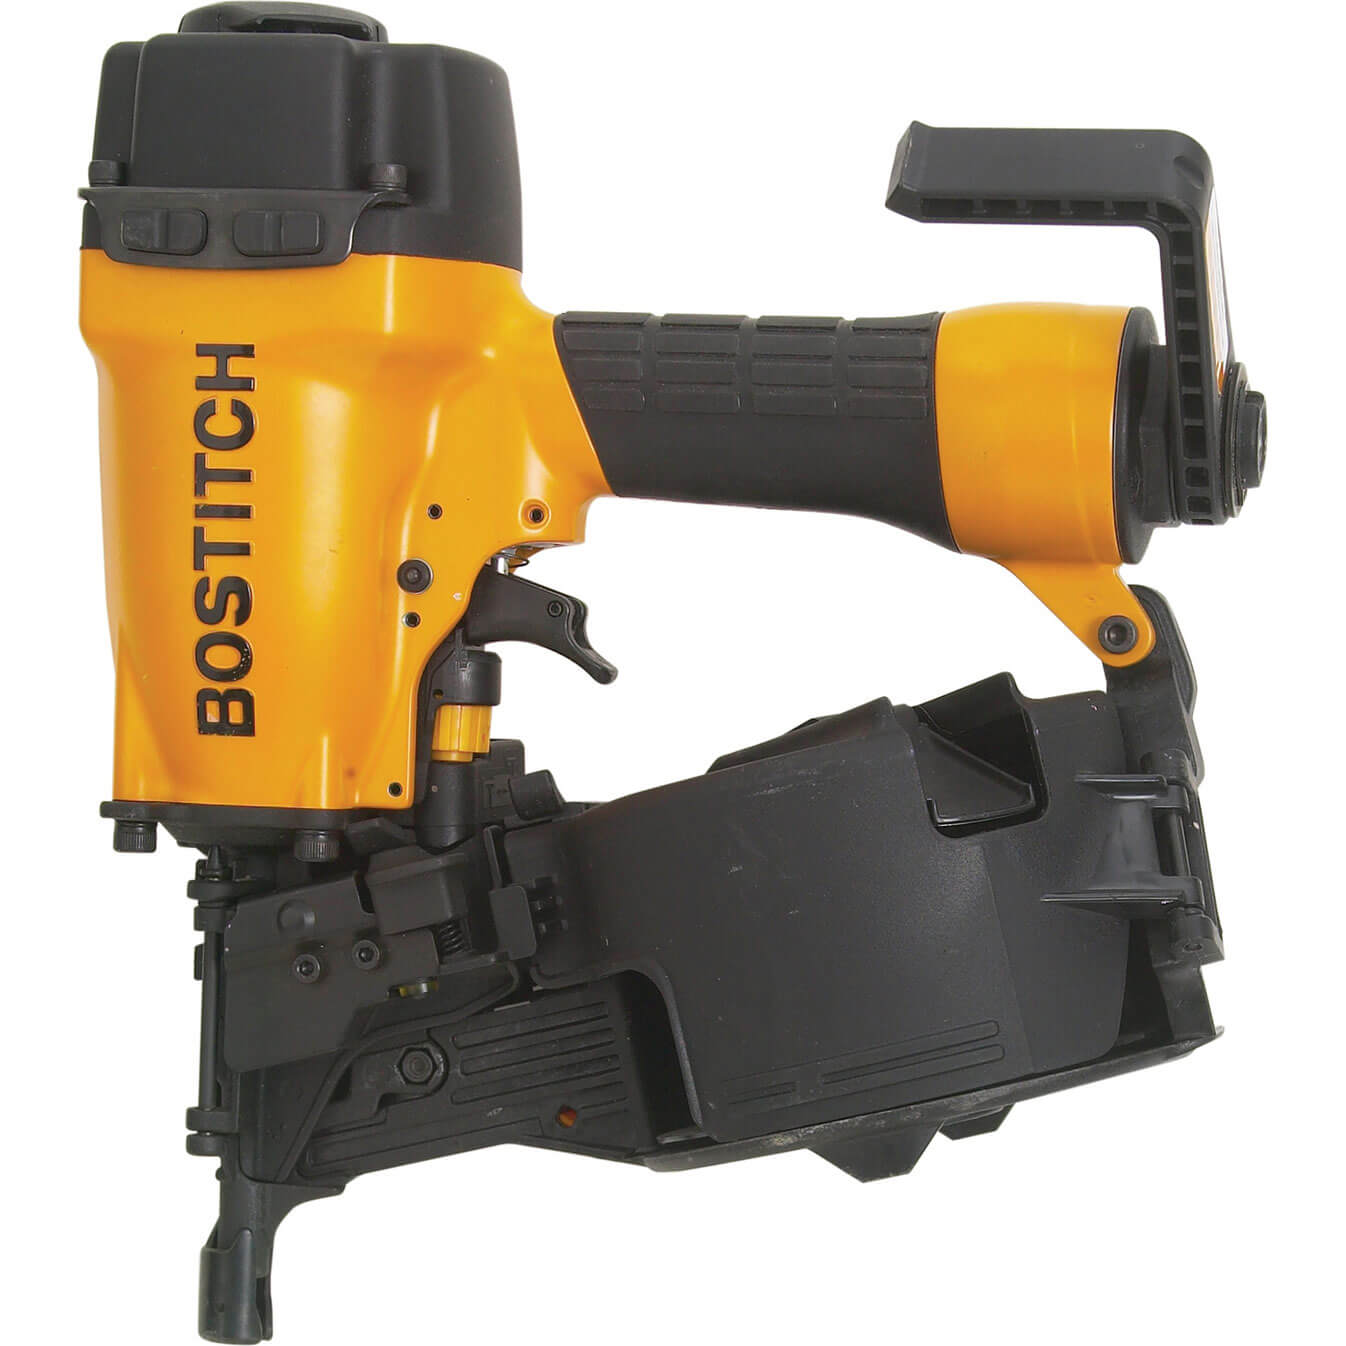 Bostitch N66C-2-E Variable Depth Control Coil Nailer 30-55mm Nails